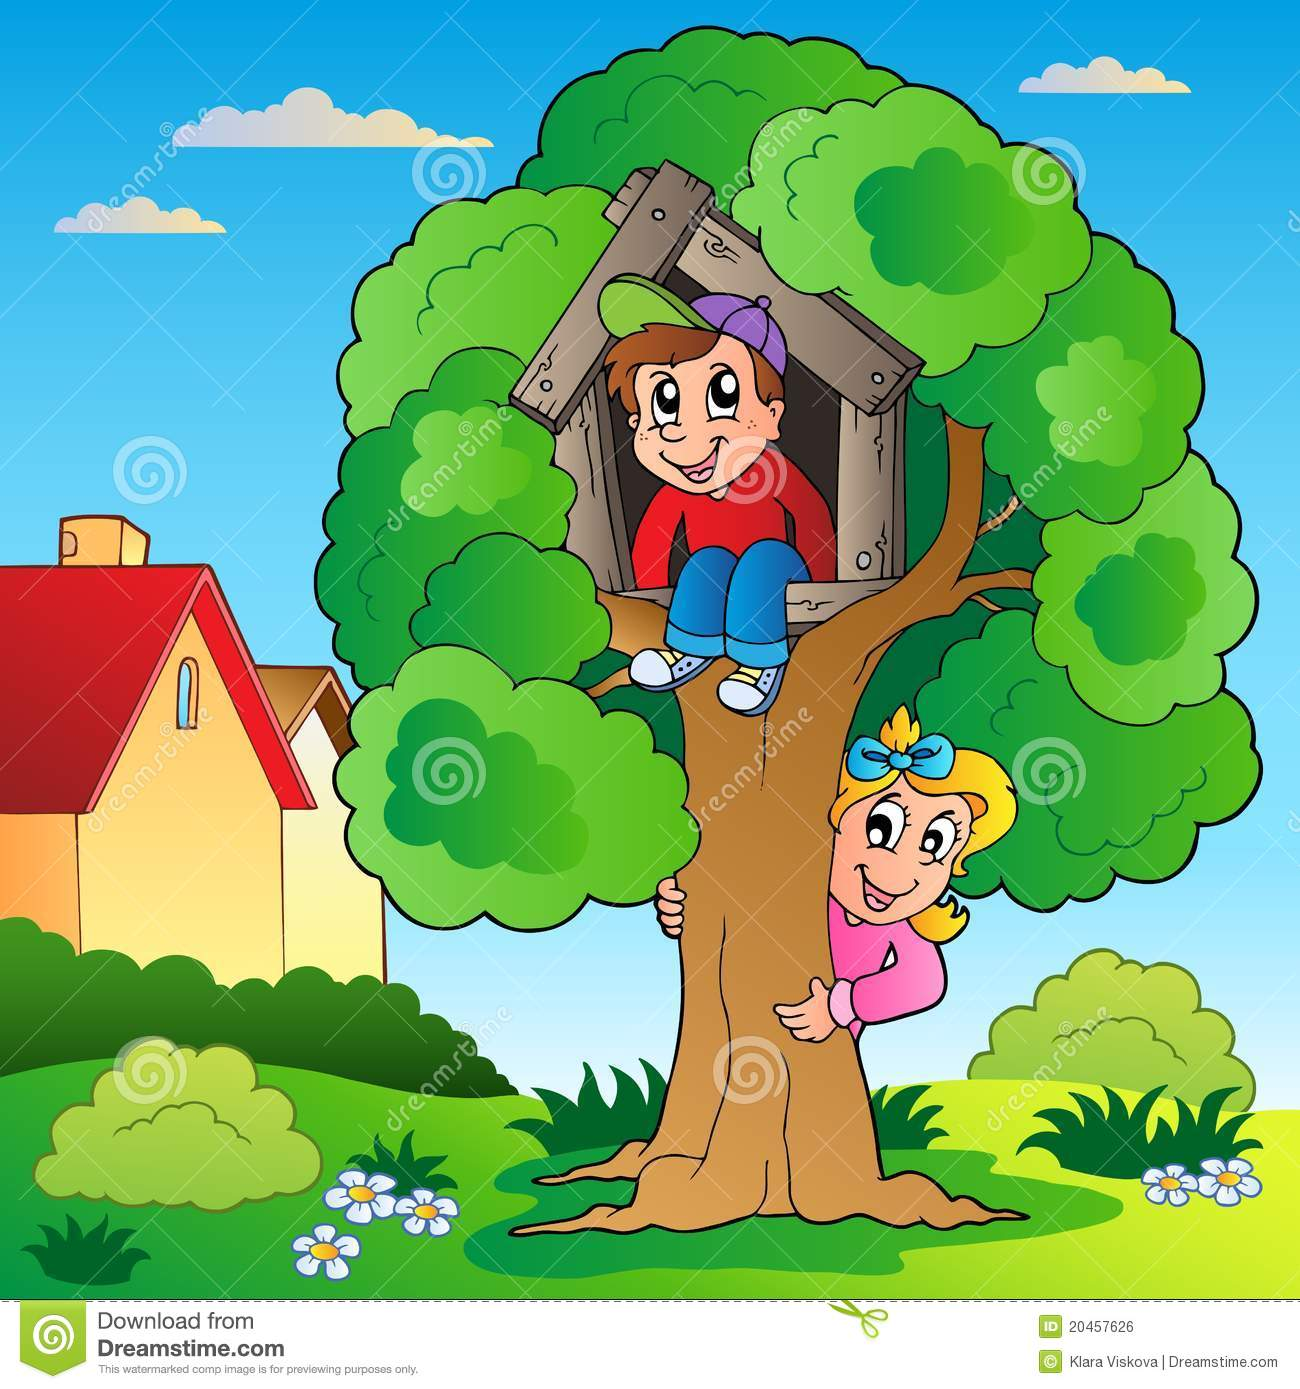 Garden With Two Kids And Tree Royalty Free Stock Image Image 20457626